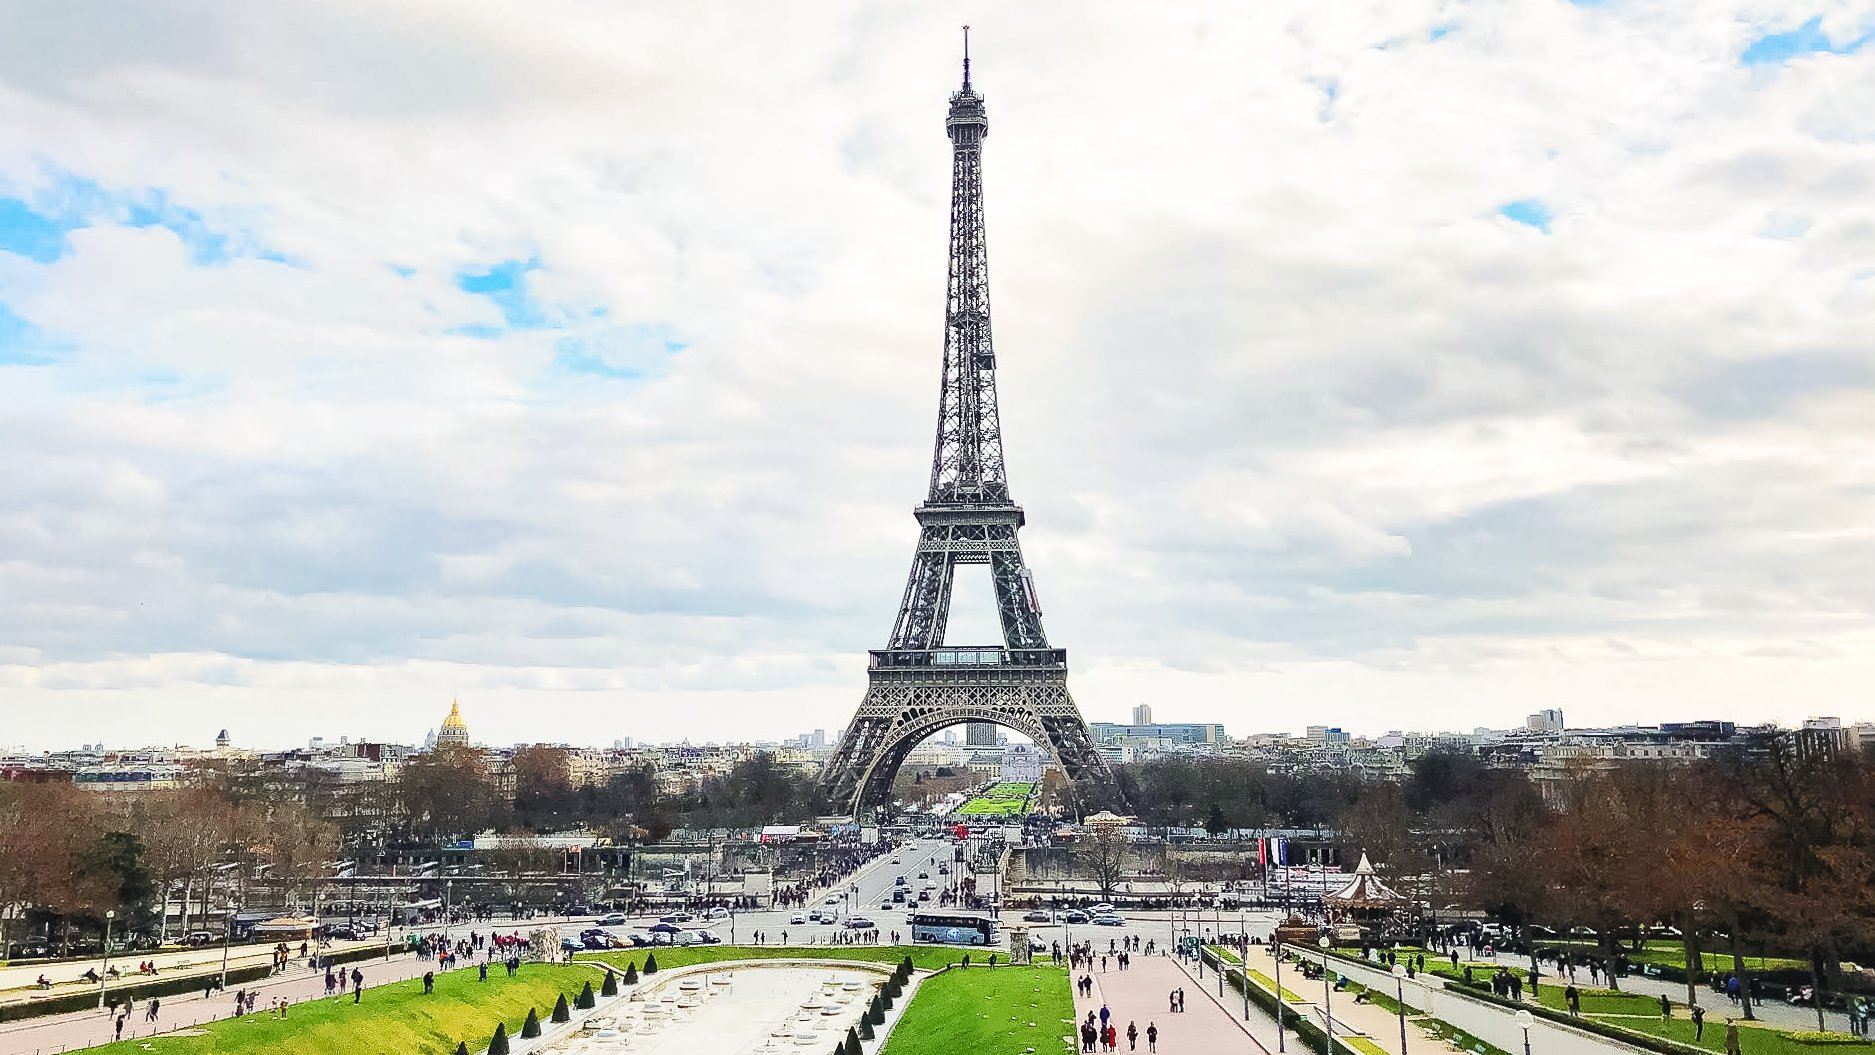 Eiffel tower with park